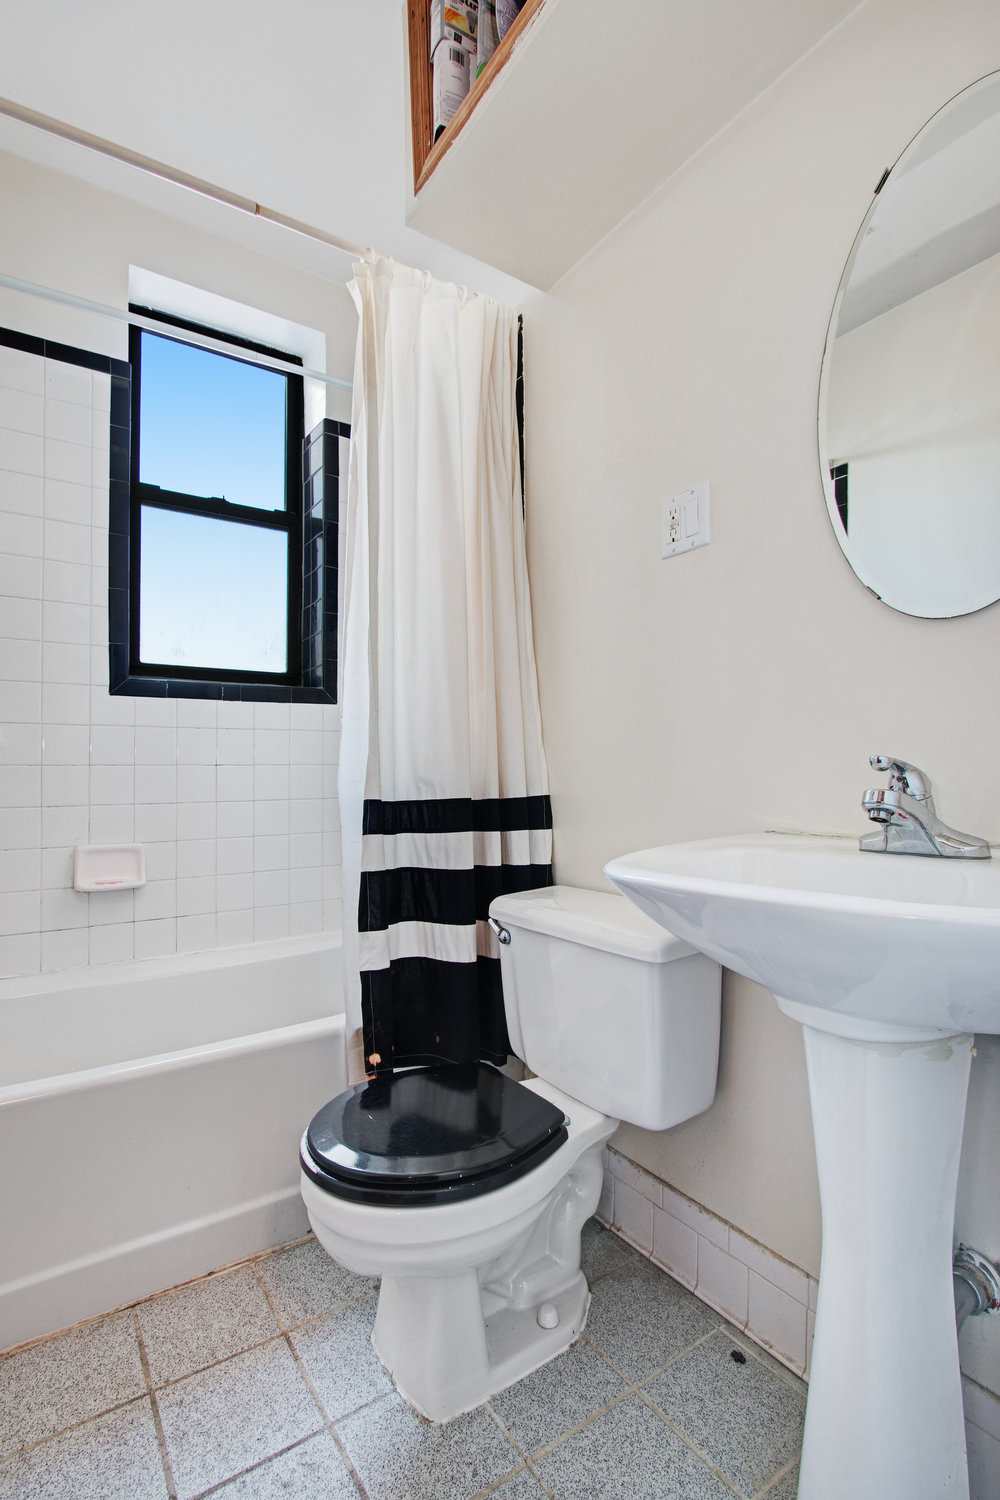 110 Cambridge Place Bathroom.jpg